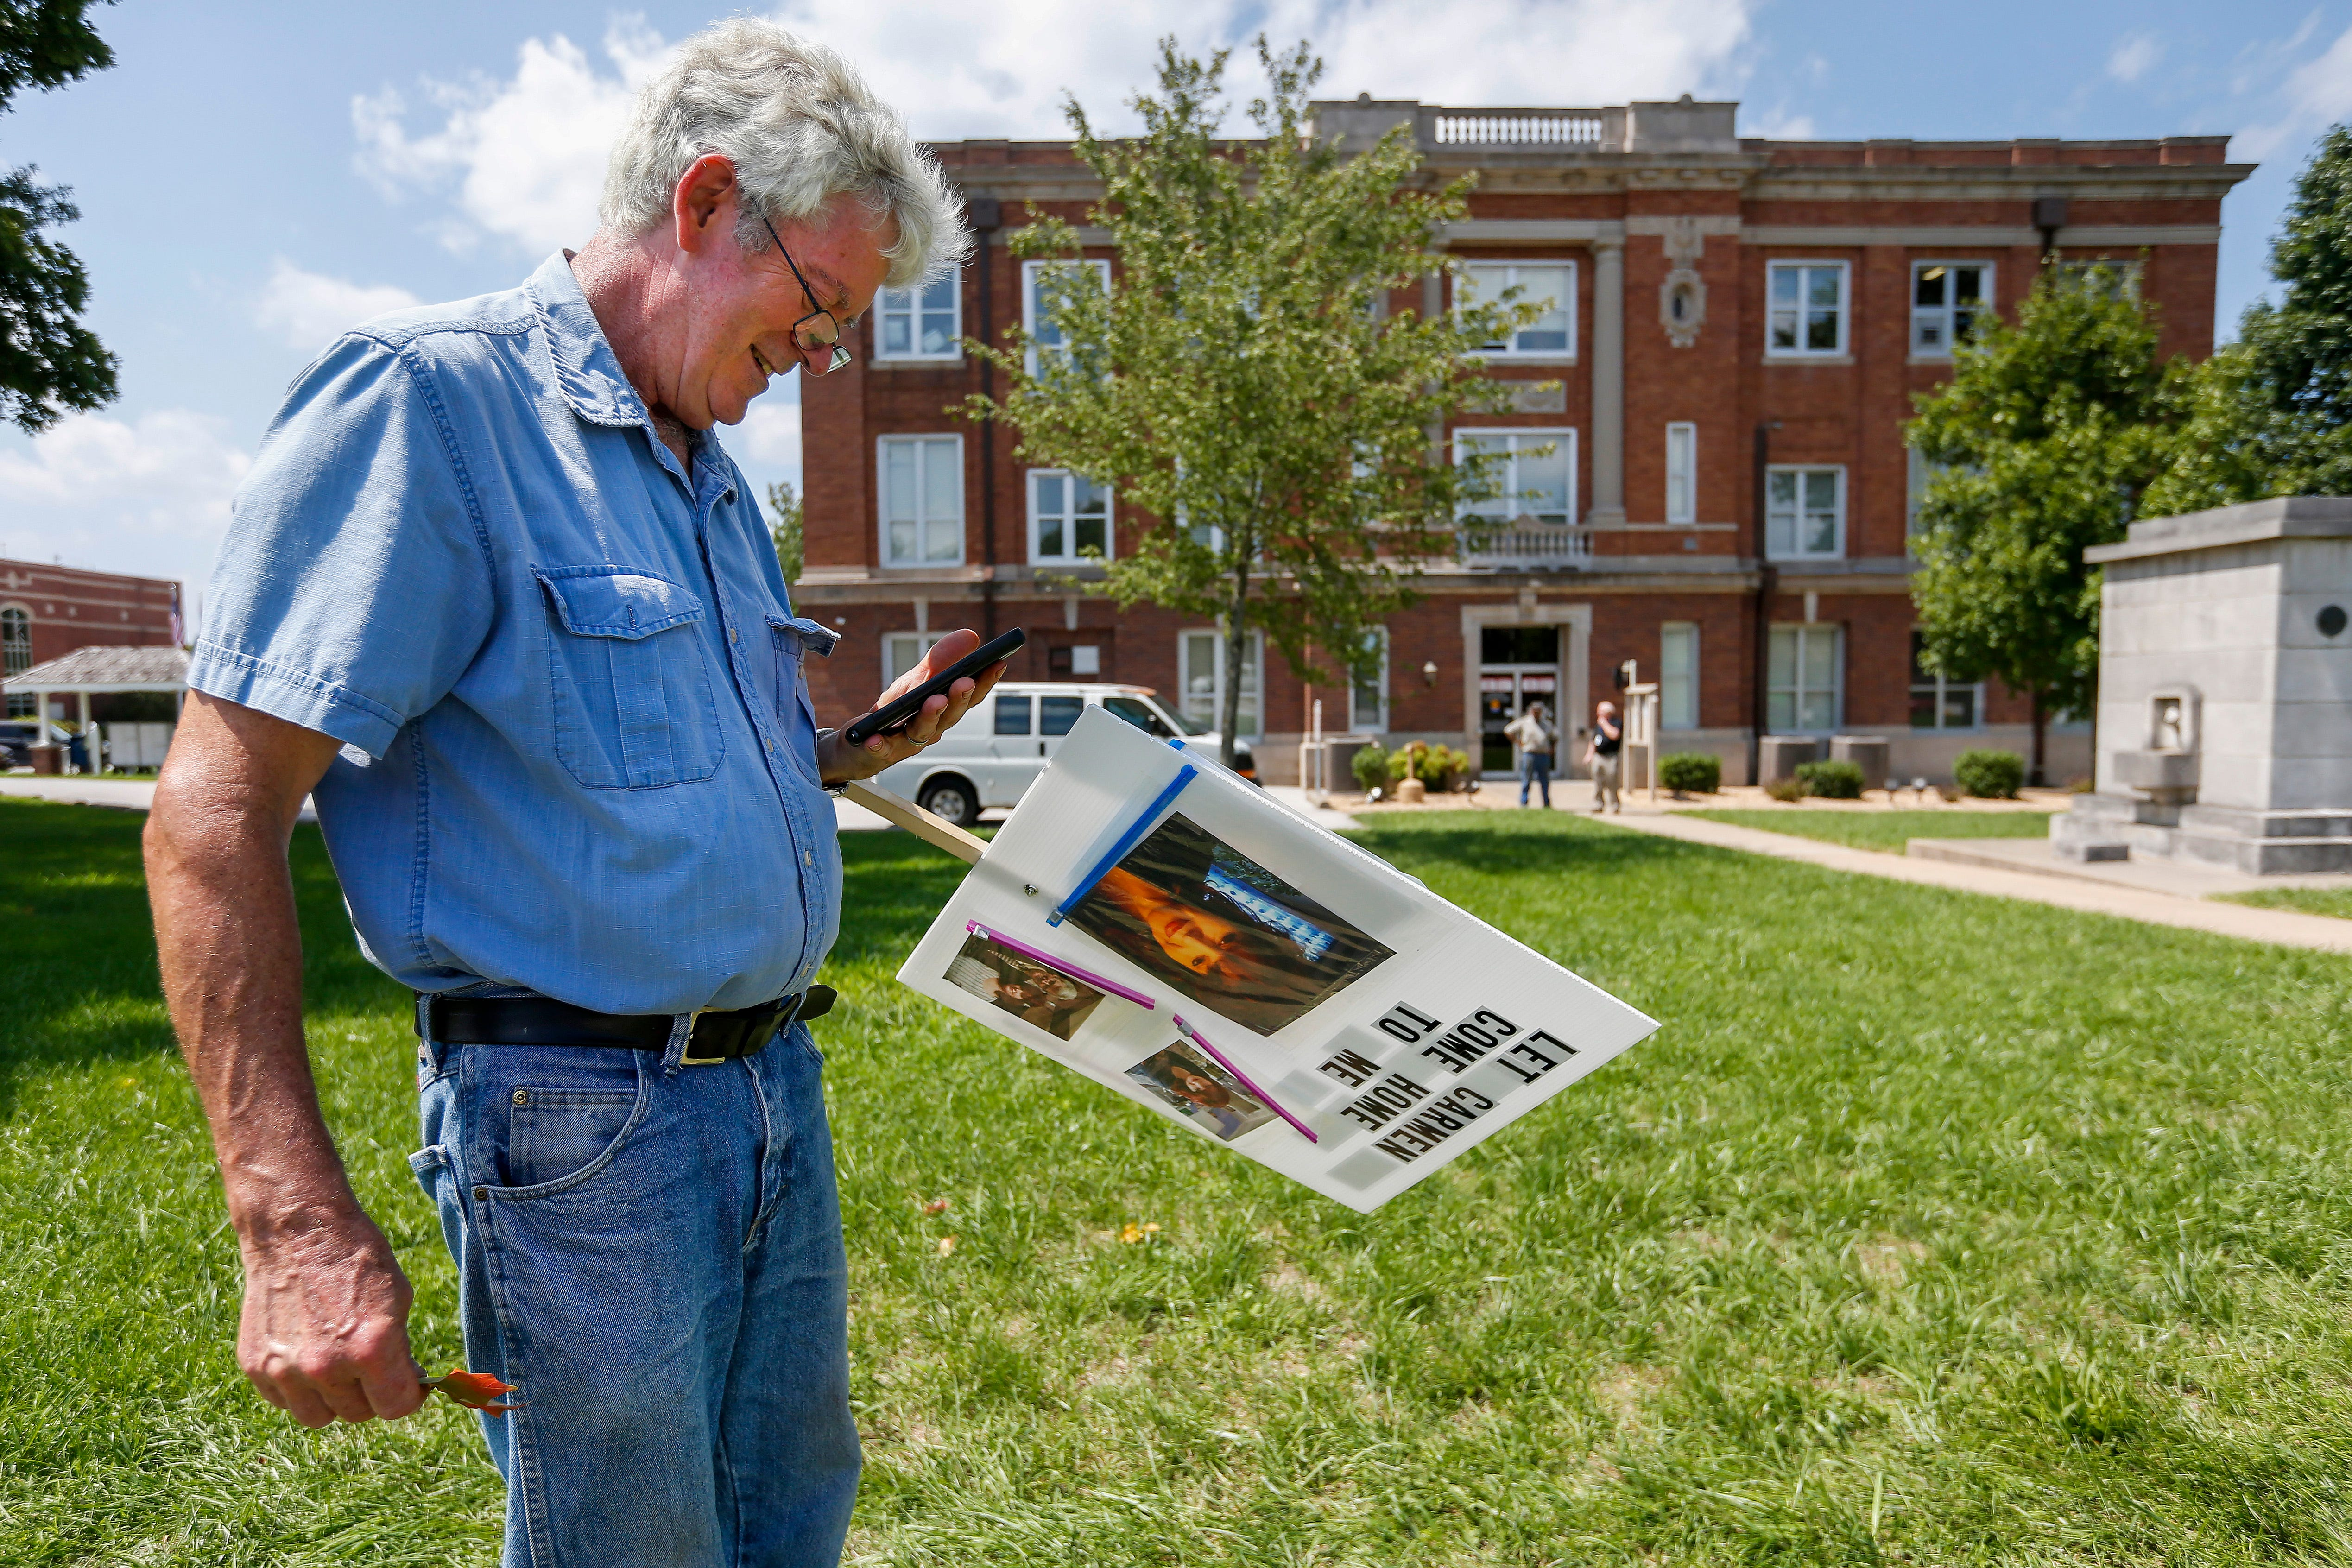 Stuart Foraker talks to his wife Carmen Foraker on the phone while protesting in front of the Christian County Historic Courthouse on Monday, Aug. 27, 2018. Carmen is stuck in Romania because she can't renew her passport.